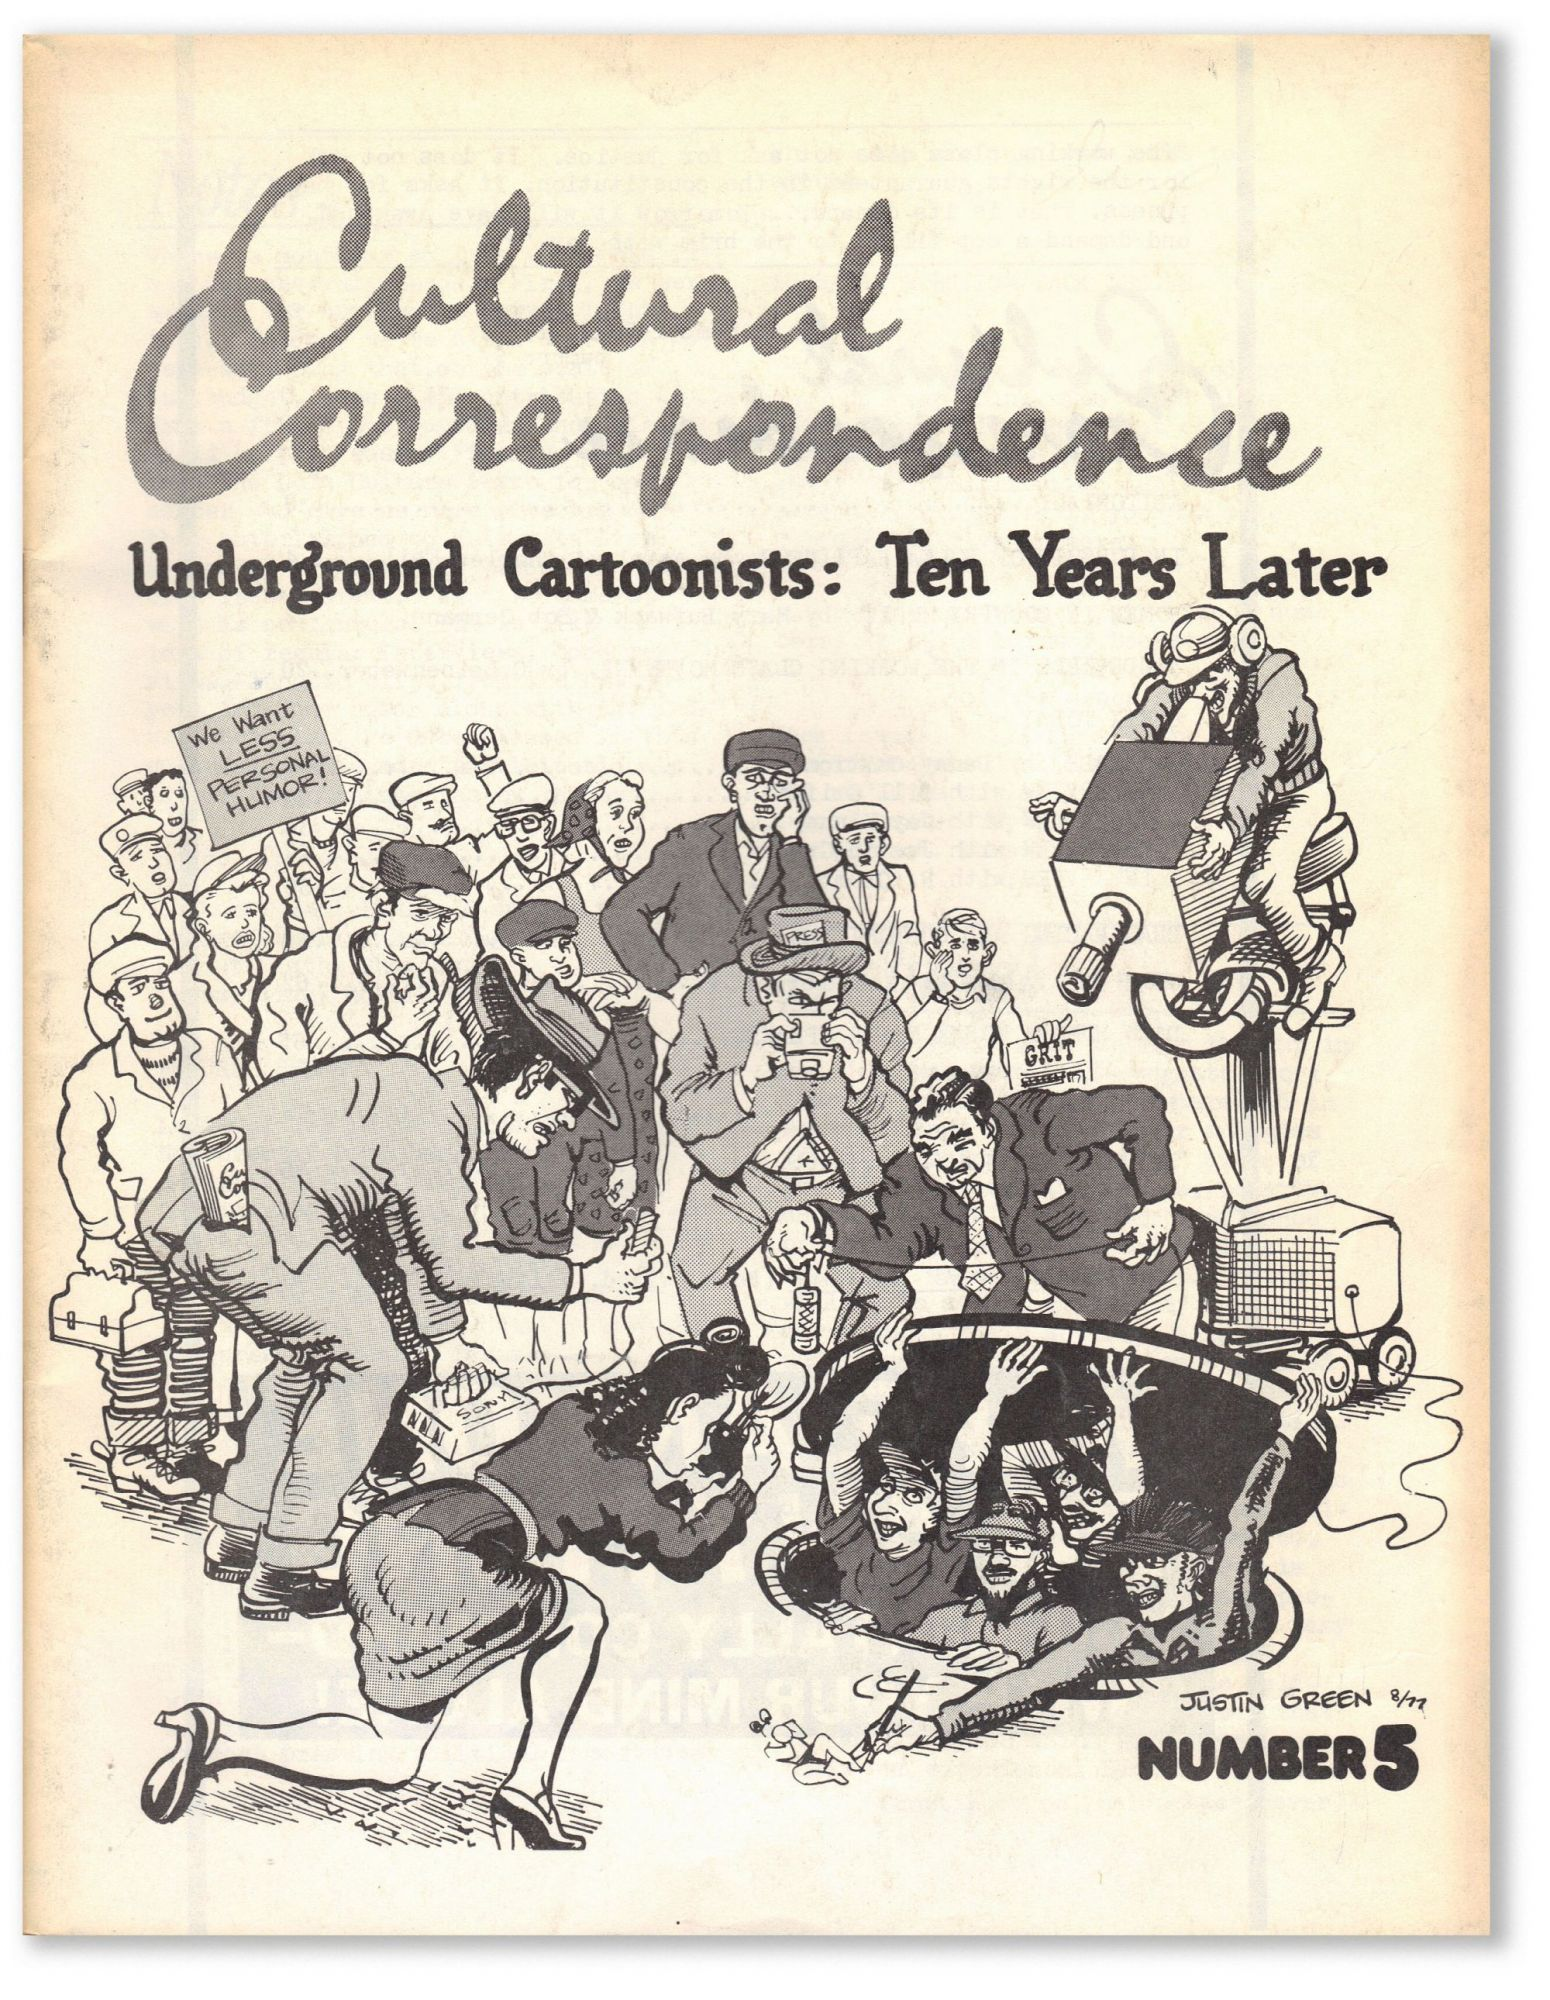 Cultural Correspondence Number 5. Underground Cartoonists: Ten Years Later. POLITICAL CARTOONS, CARICATURE, eds.